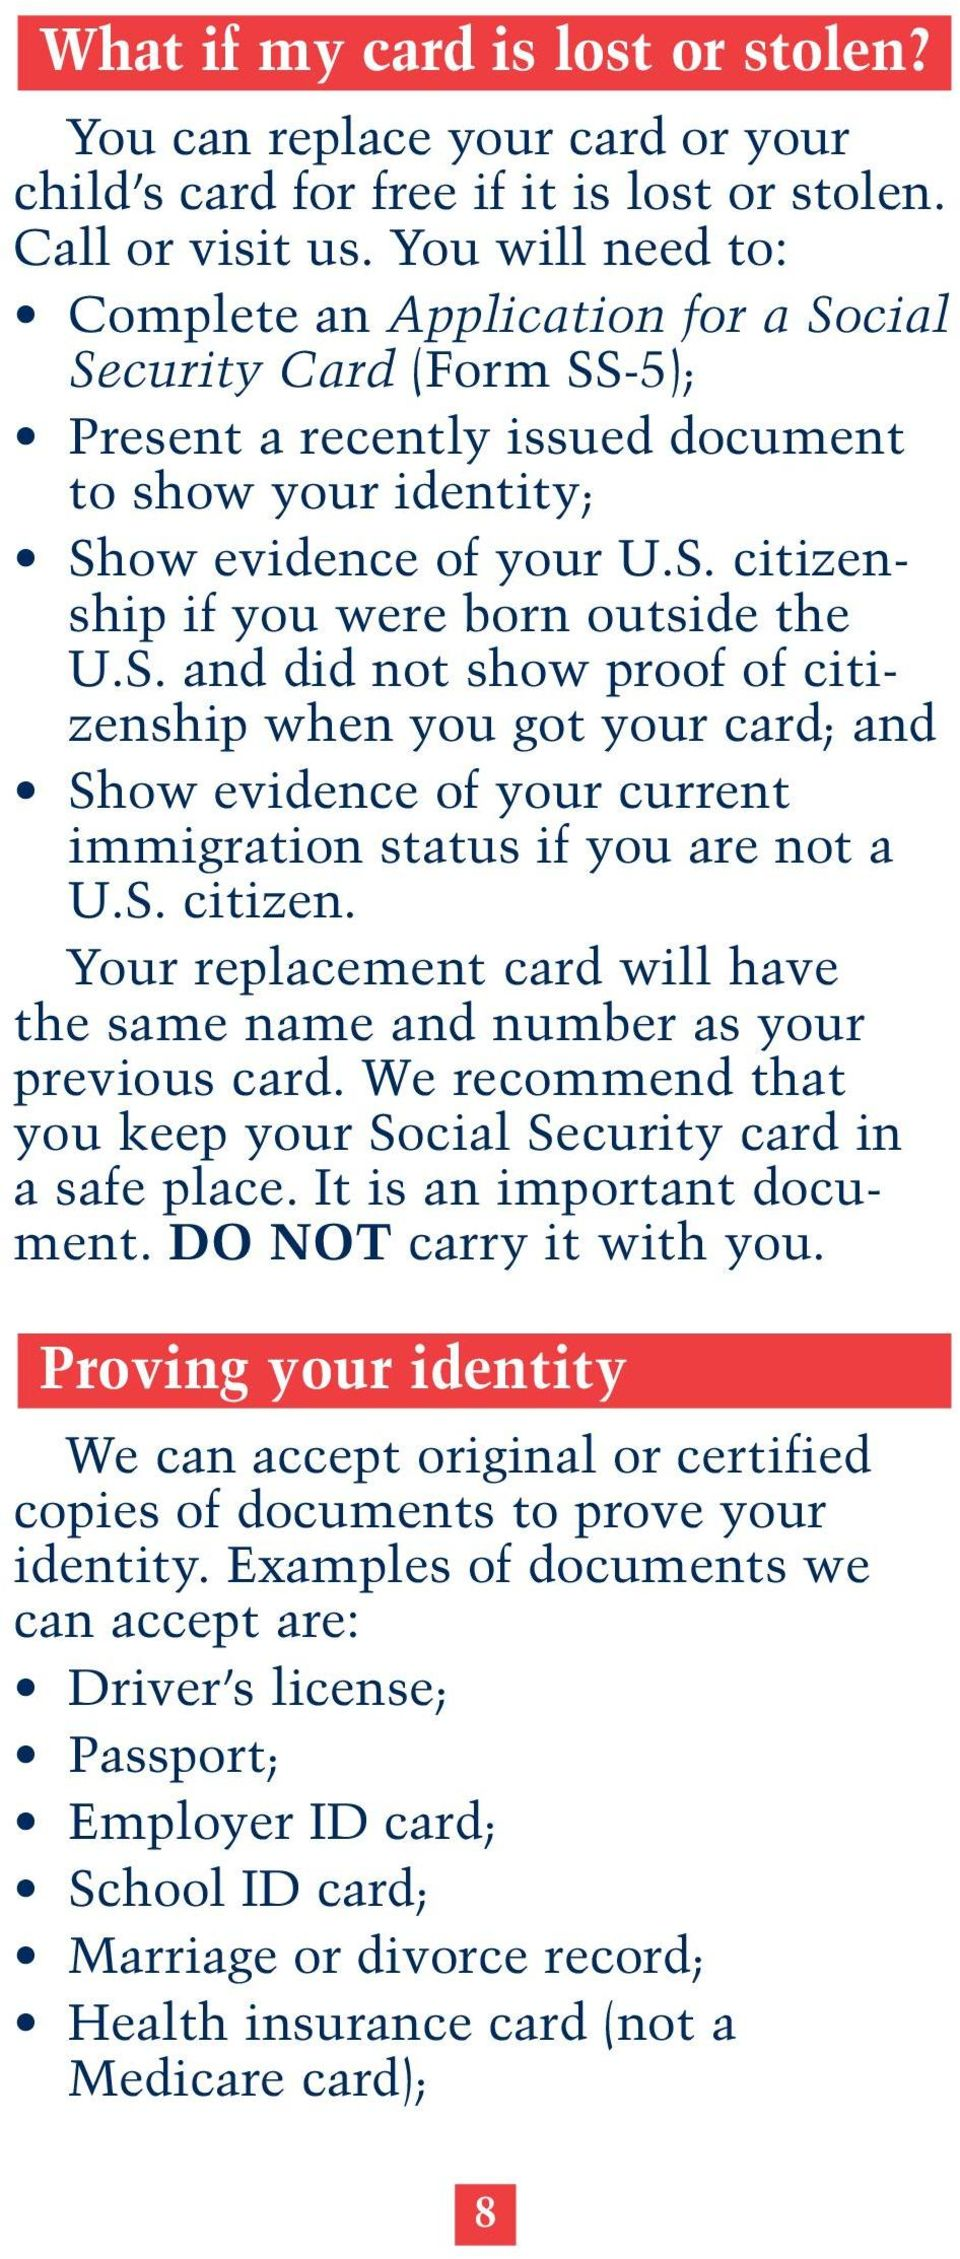 S. and did not show proof of citizenship when you got your card; and Show evidence of your current immigration status if you are not a U.S. citizen. Your replacement card will have the same name and number as your previous card.